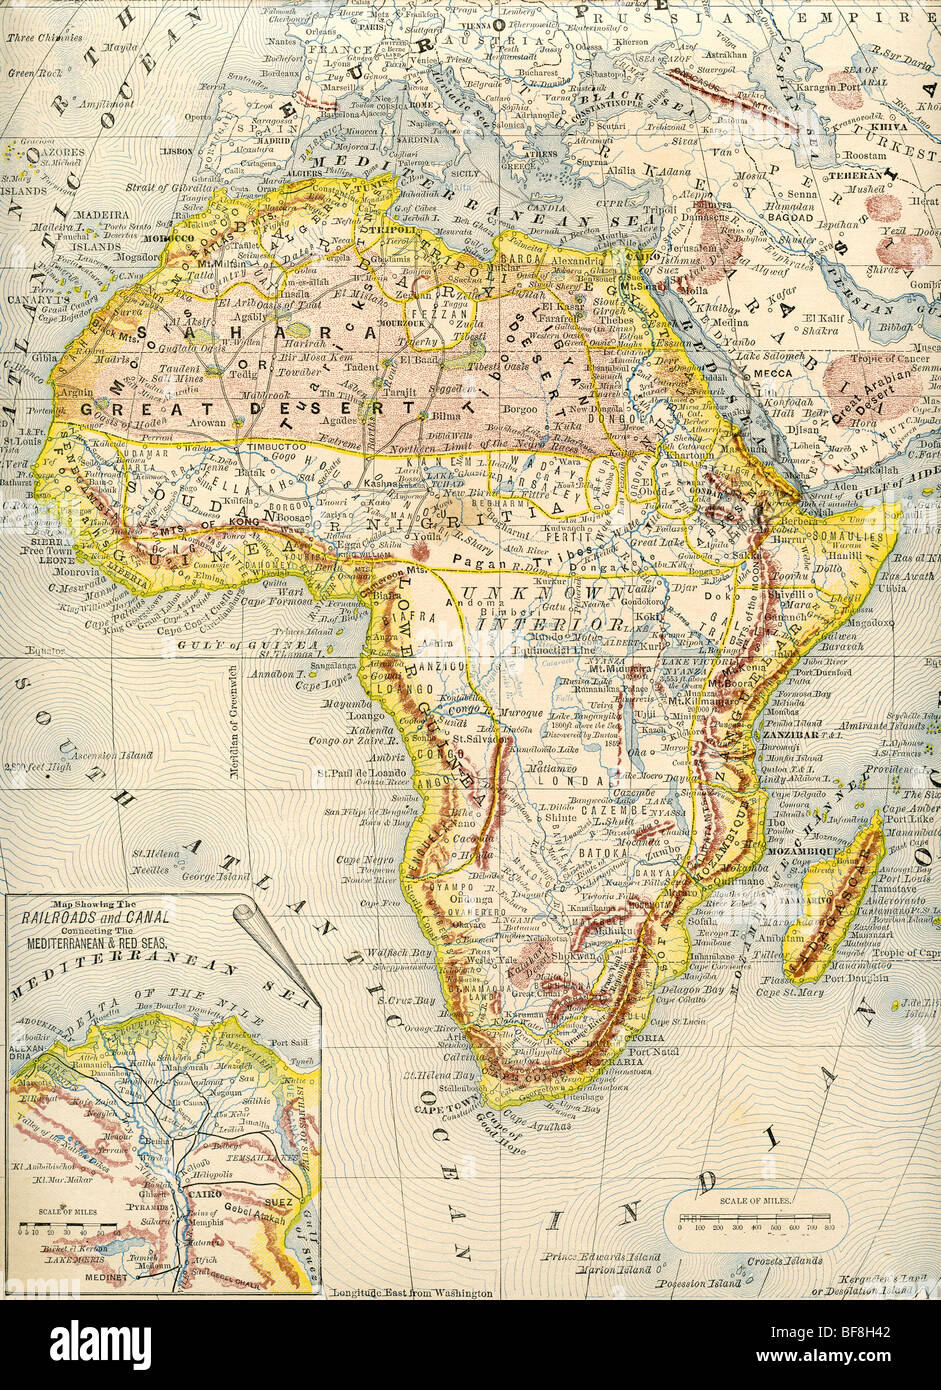 Original Old Map Of Africa From 1884 Geography Textbook Stock Photo